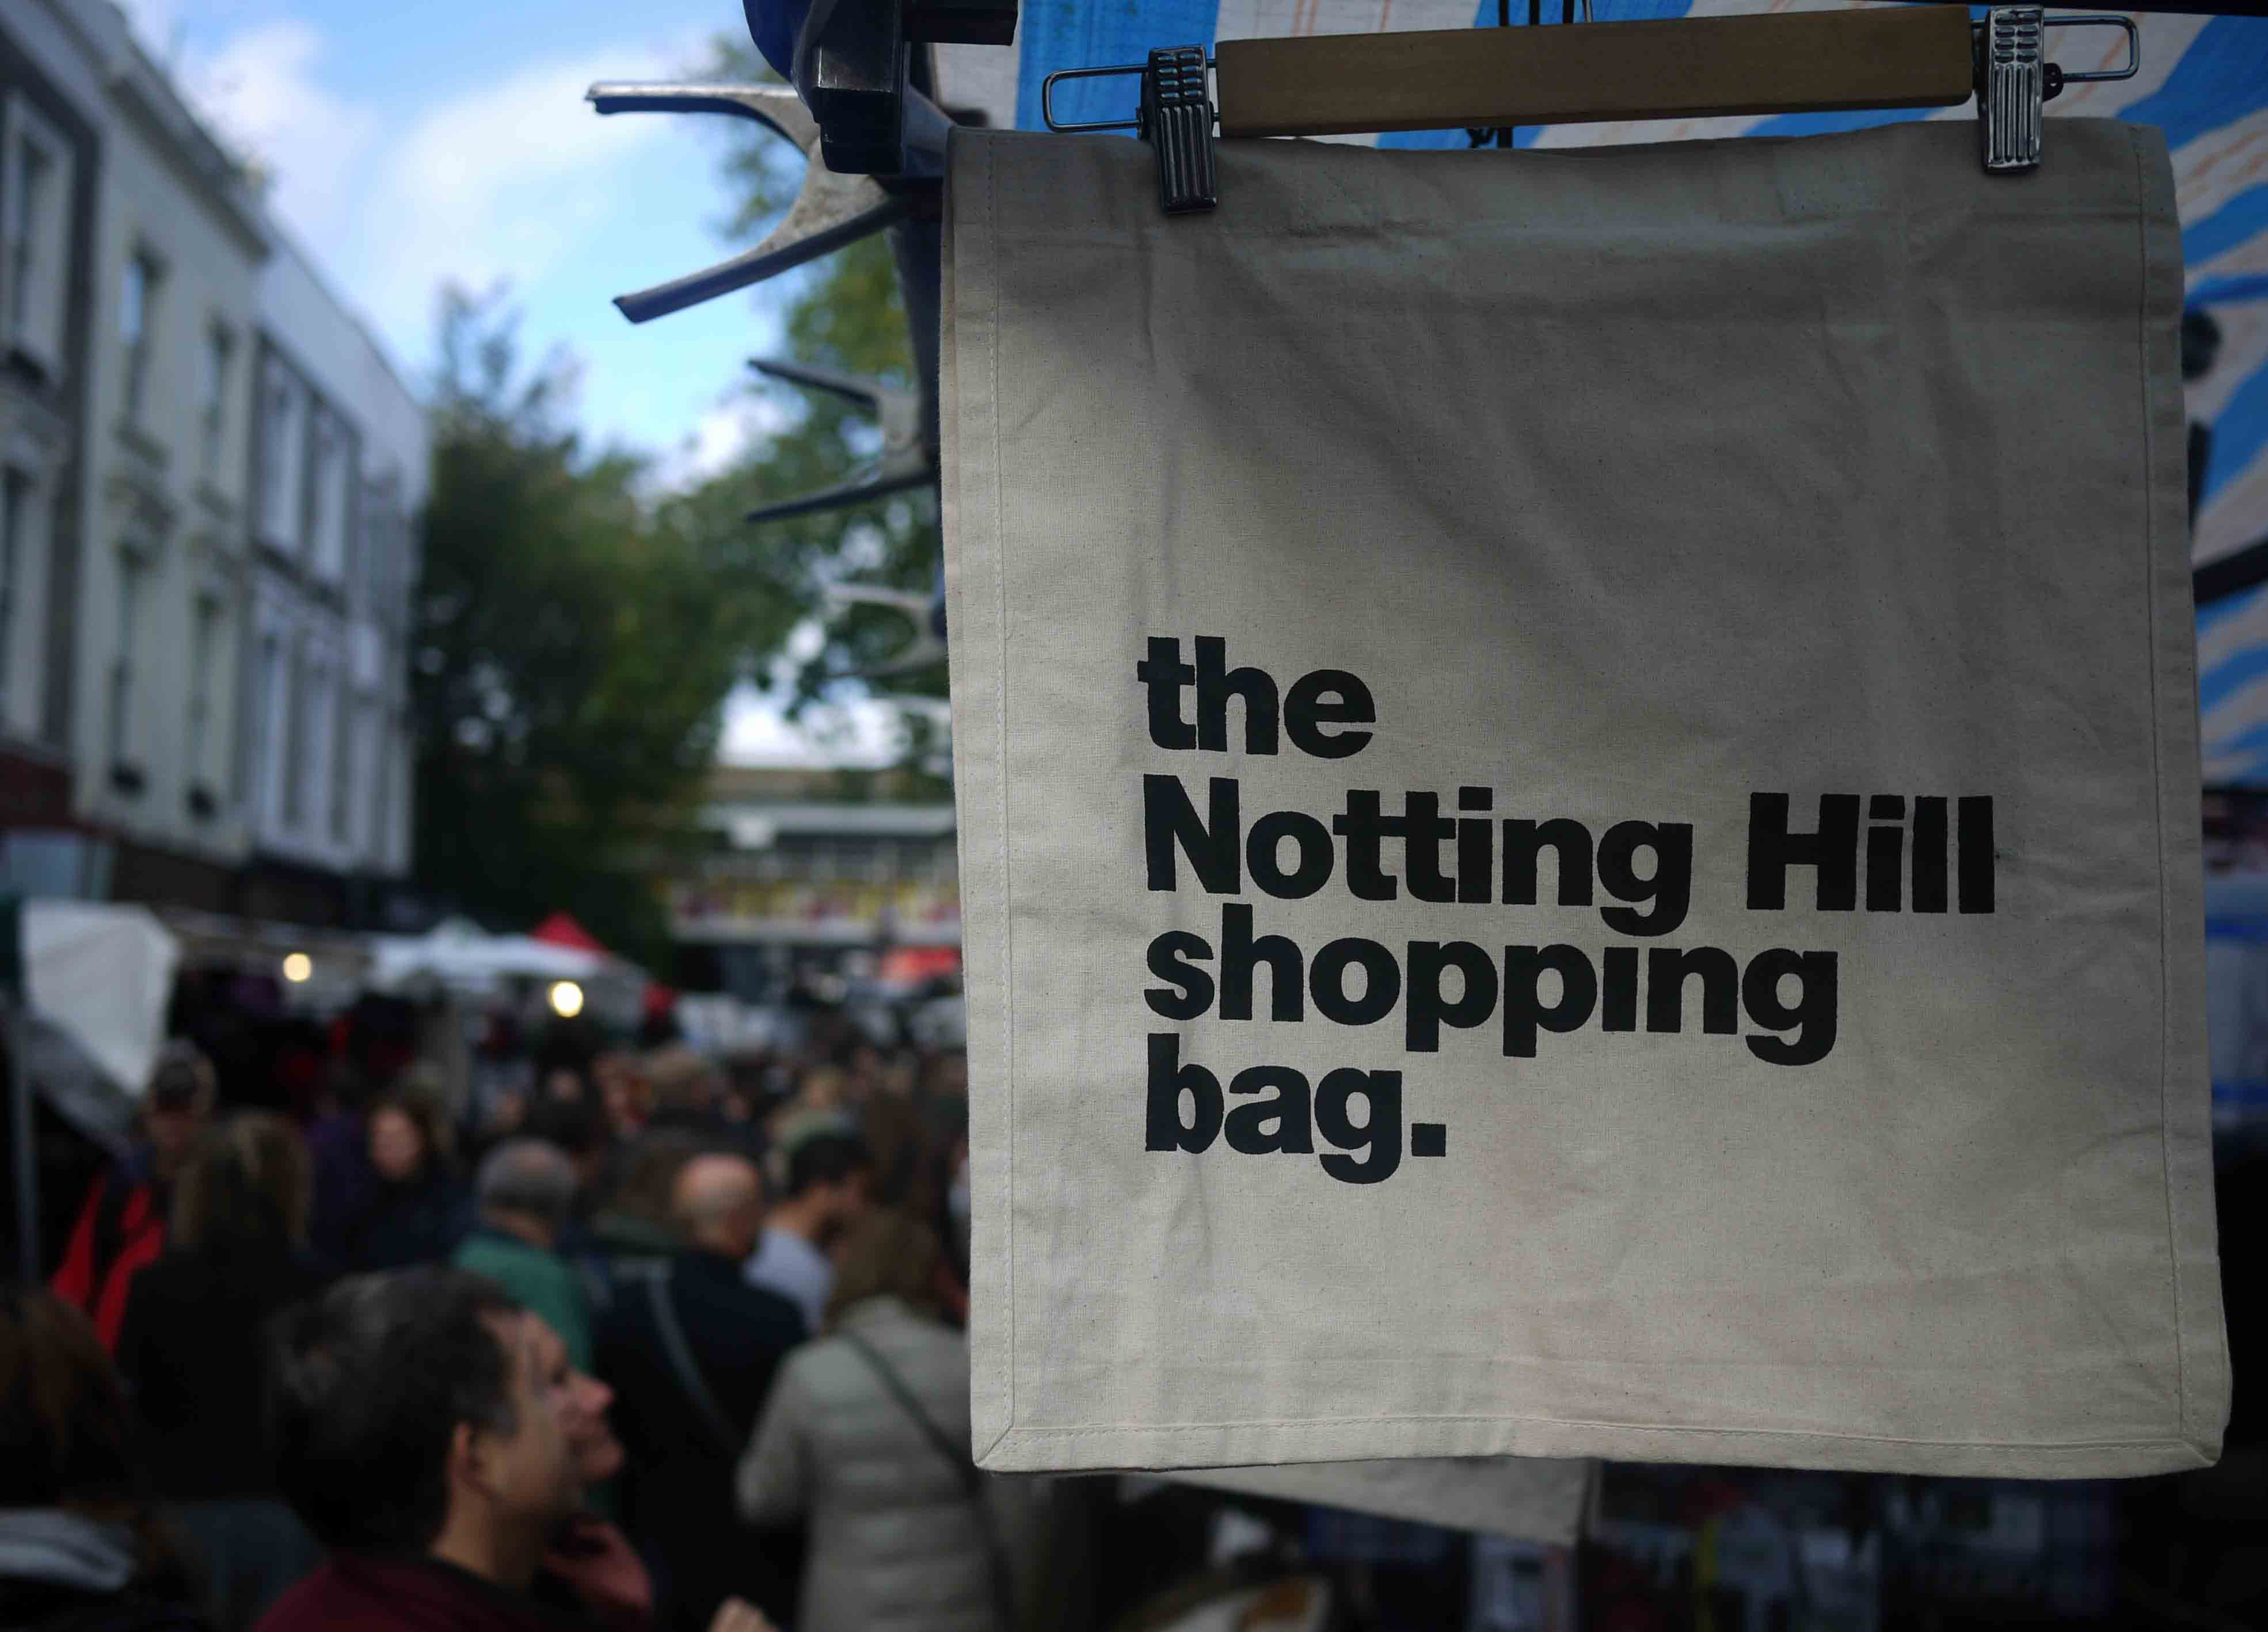 The Notting Hill Shopping Bag